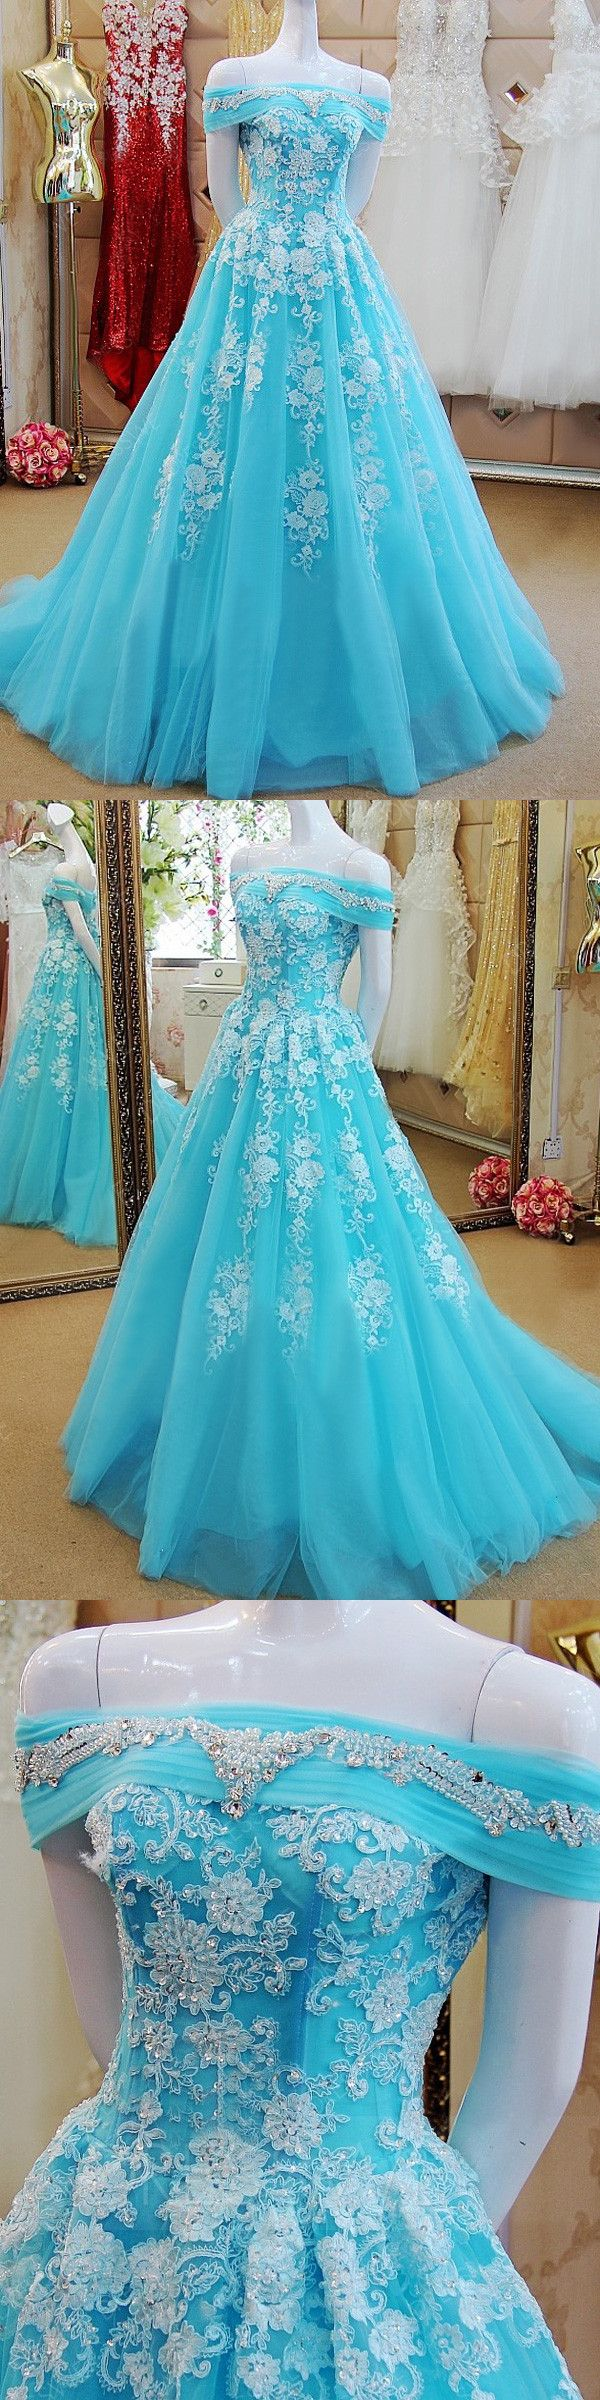 A-line Off-the-shoulder Floor-length Short Tulle Prom Dress/Evening Dress # VC422